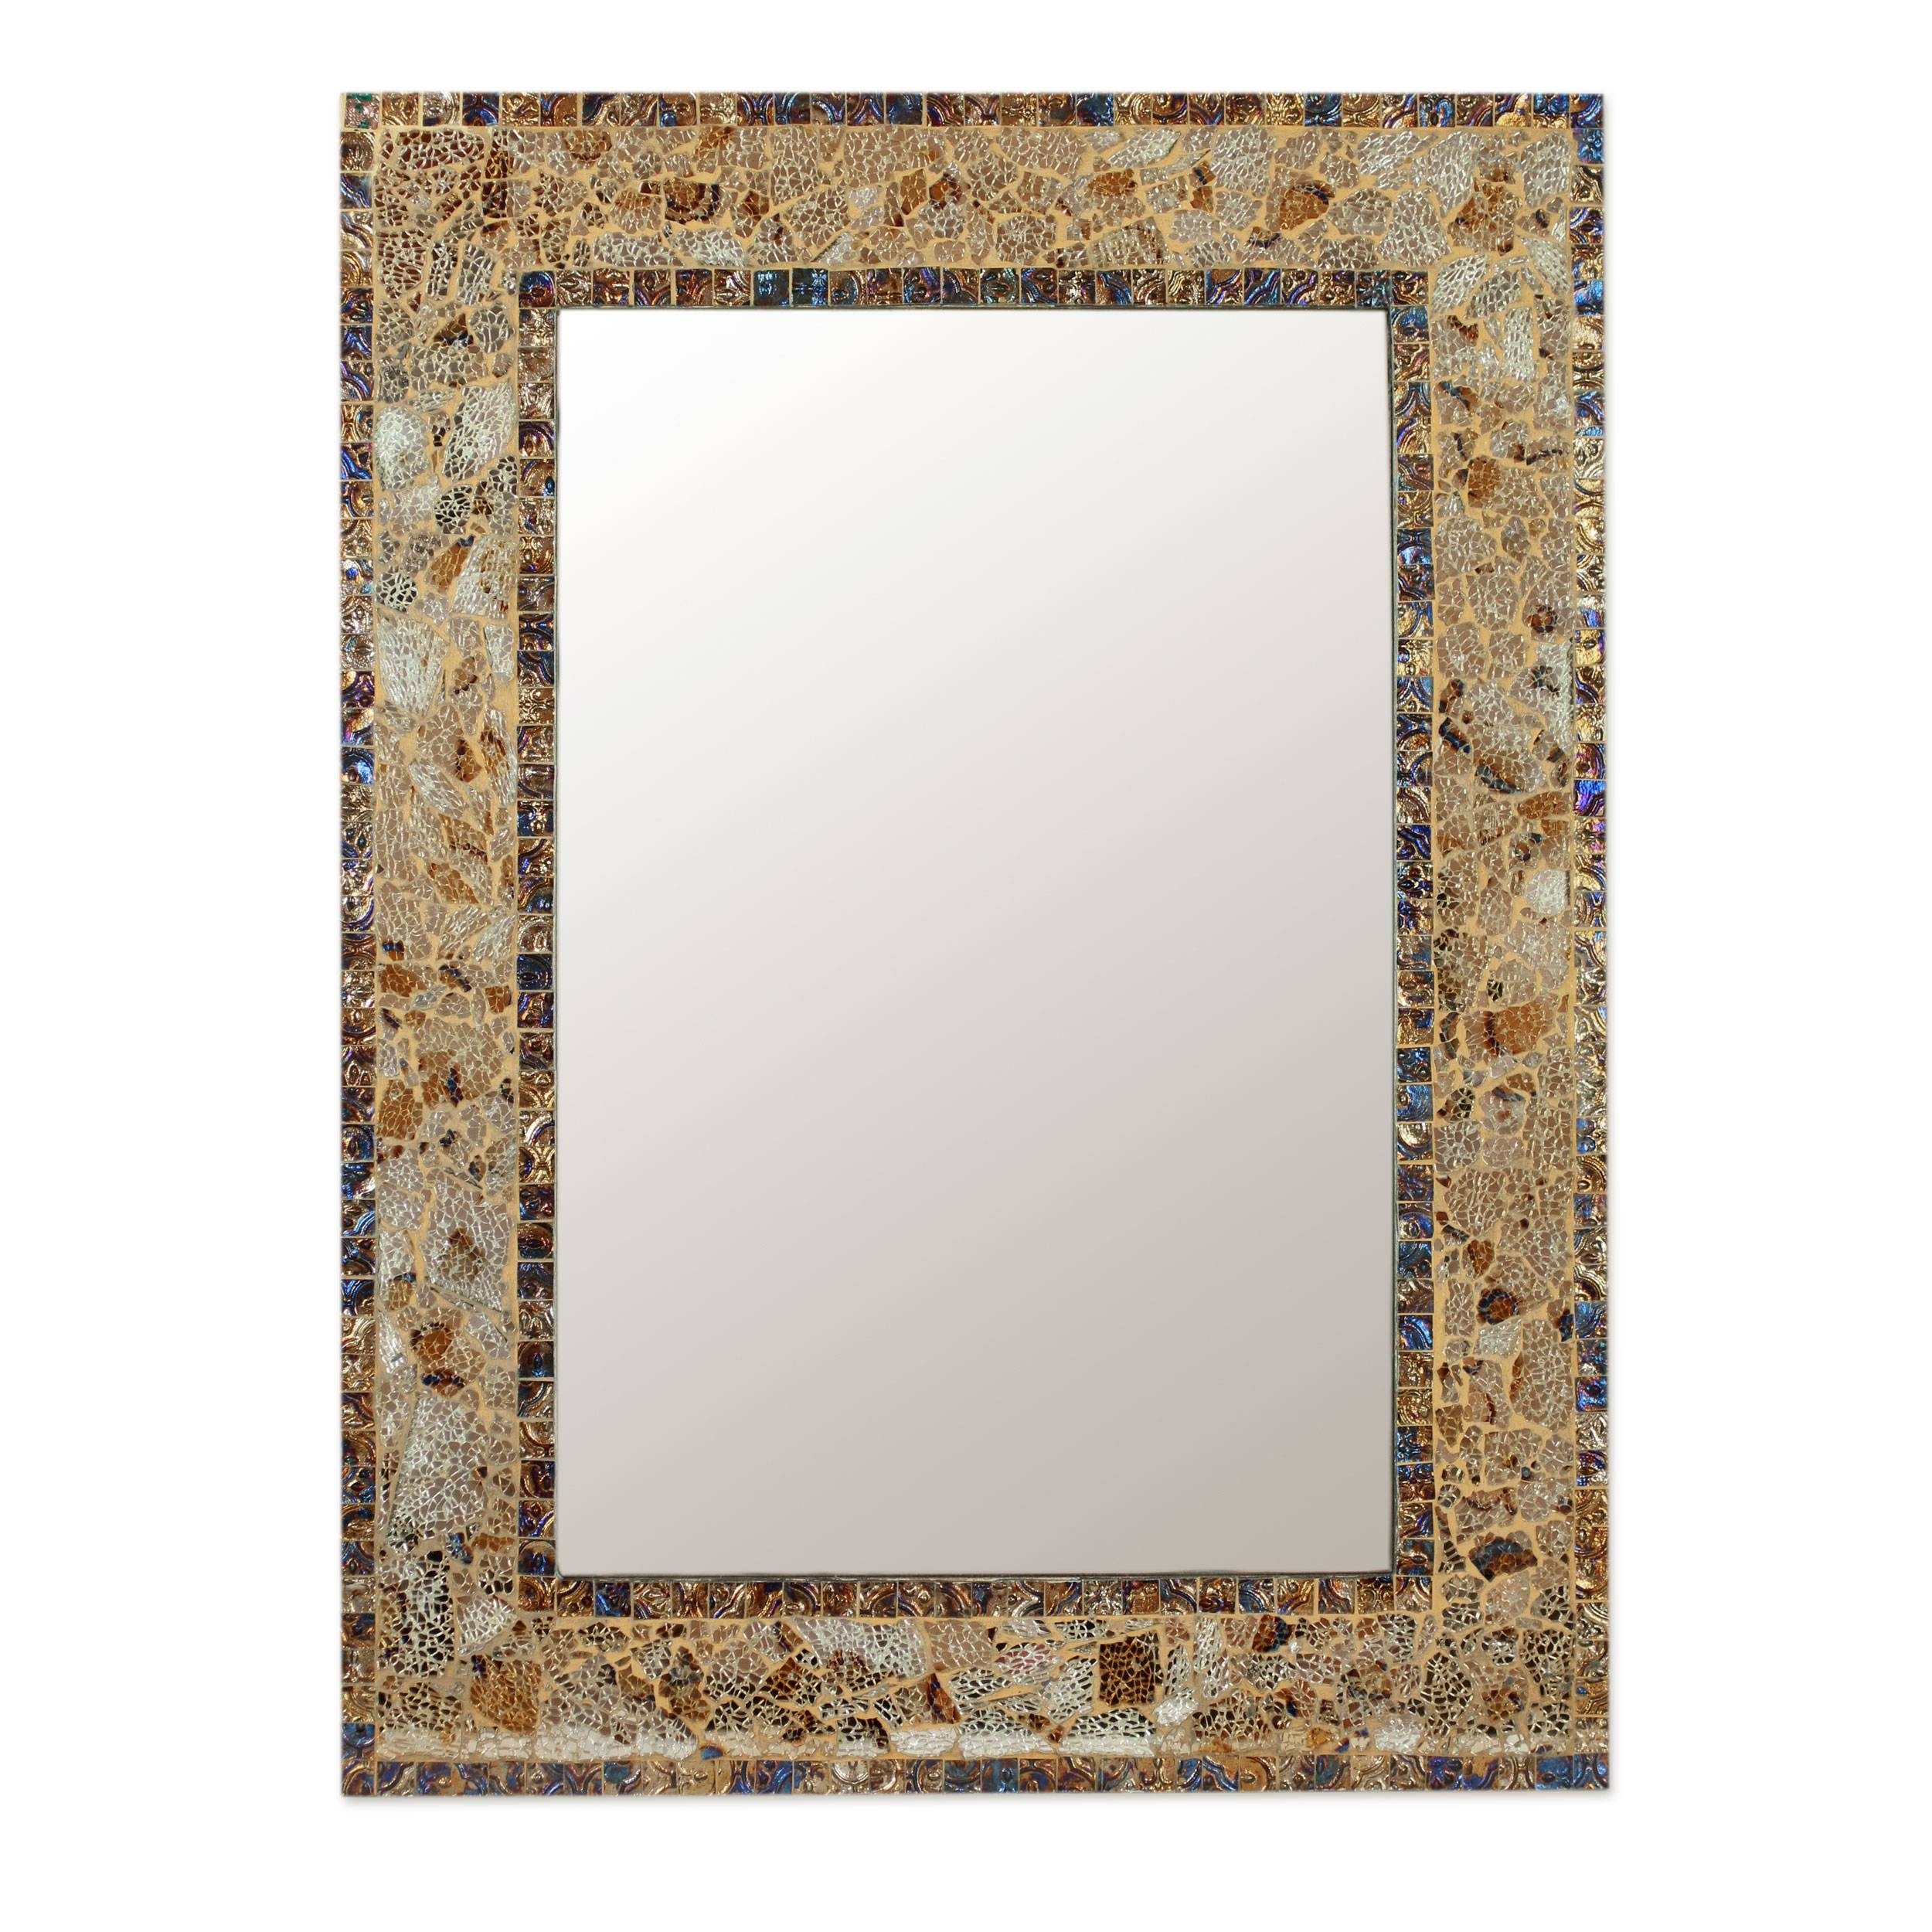 Mirrors - Decorative Global & Antique-Style Wall Mirrors - Novica in Antique Looking Mirrors (Image 21 of 25)